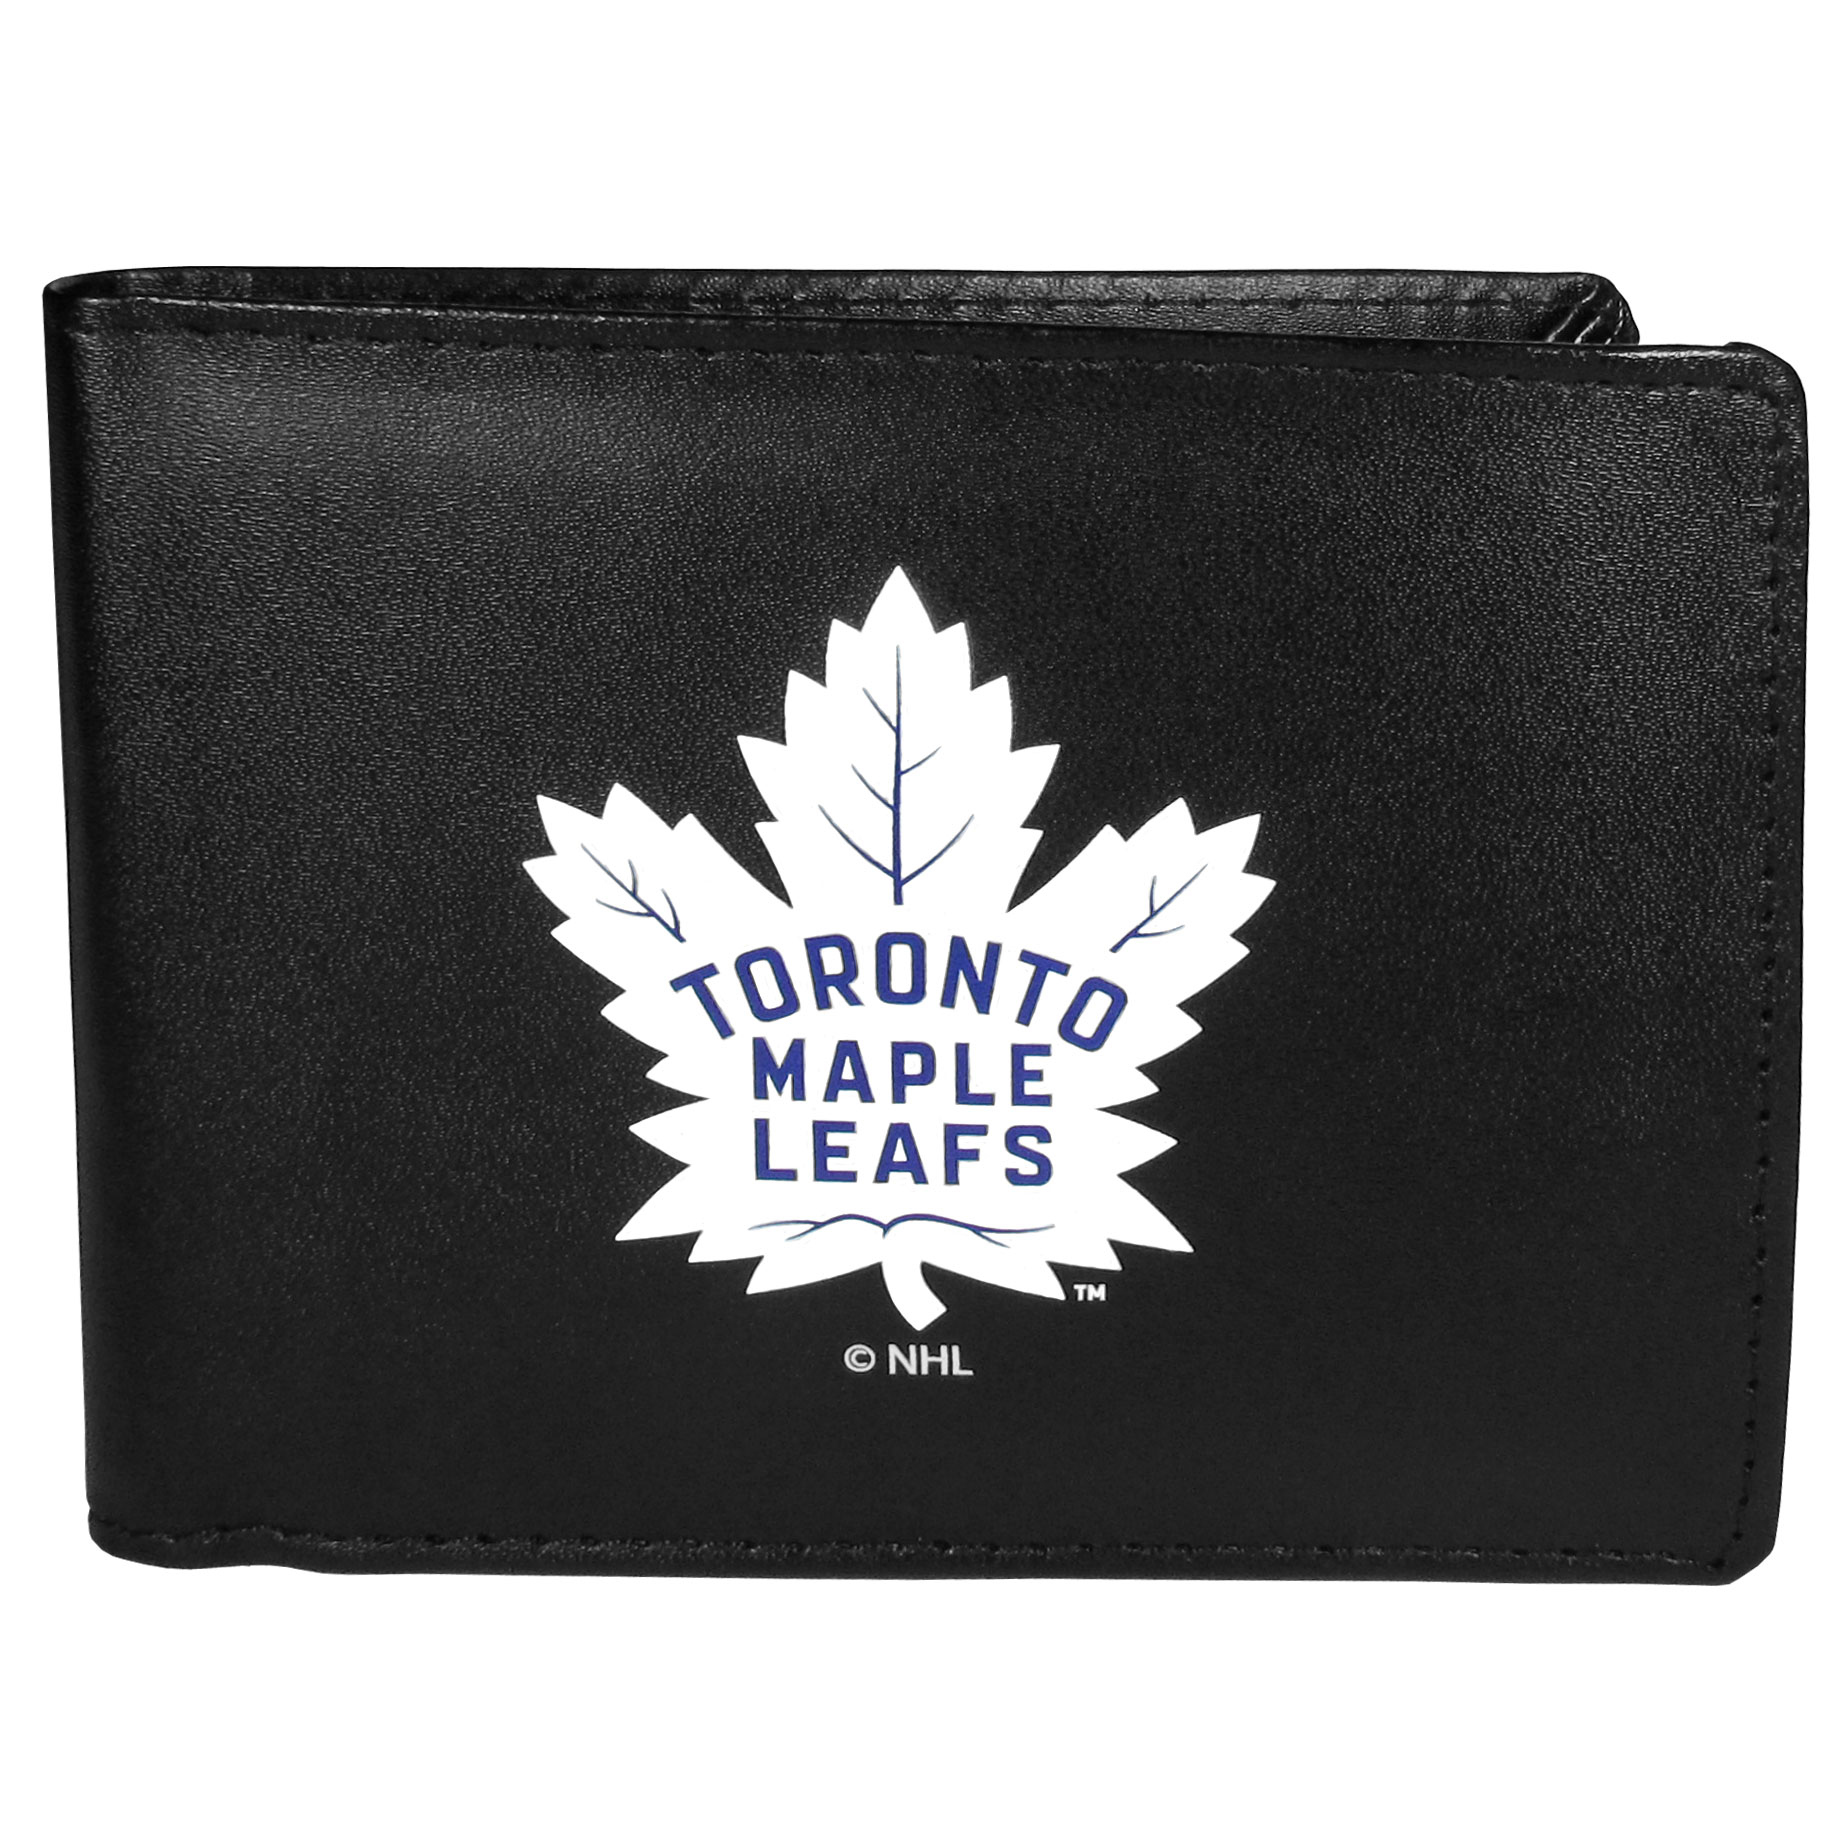 Toronto Maple Leafs Bi-fold Wallet Large Logo - Sports fans do not have to sacrifice style with this classic bi-fold wallet that sports the Toronto Maple Leafs?extra large logo. This men's fashion accessory has a leather grain look and expert craftmanship for a quality wallet at a great price. The wallet features inner credit card slots, windowed ID slot and a large billfold pocket. The front of the wallet features a printed team logo.